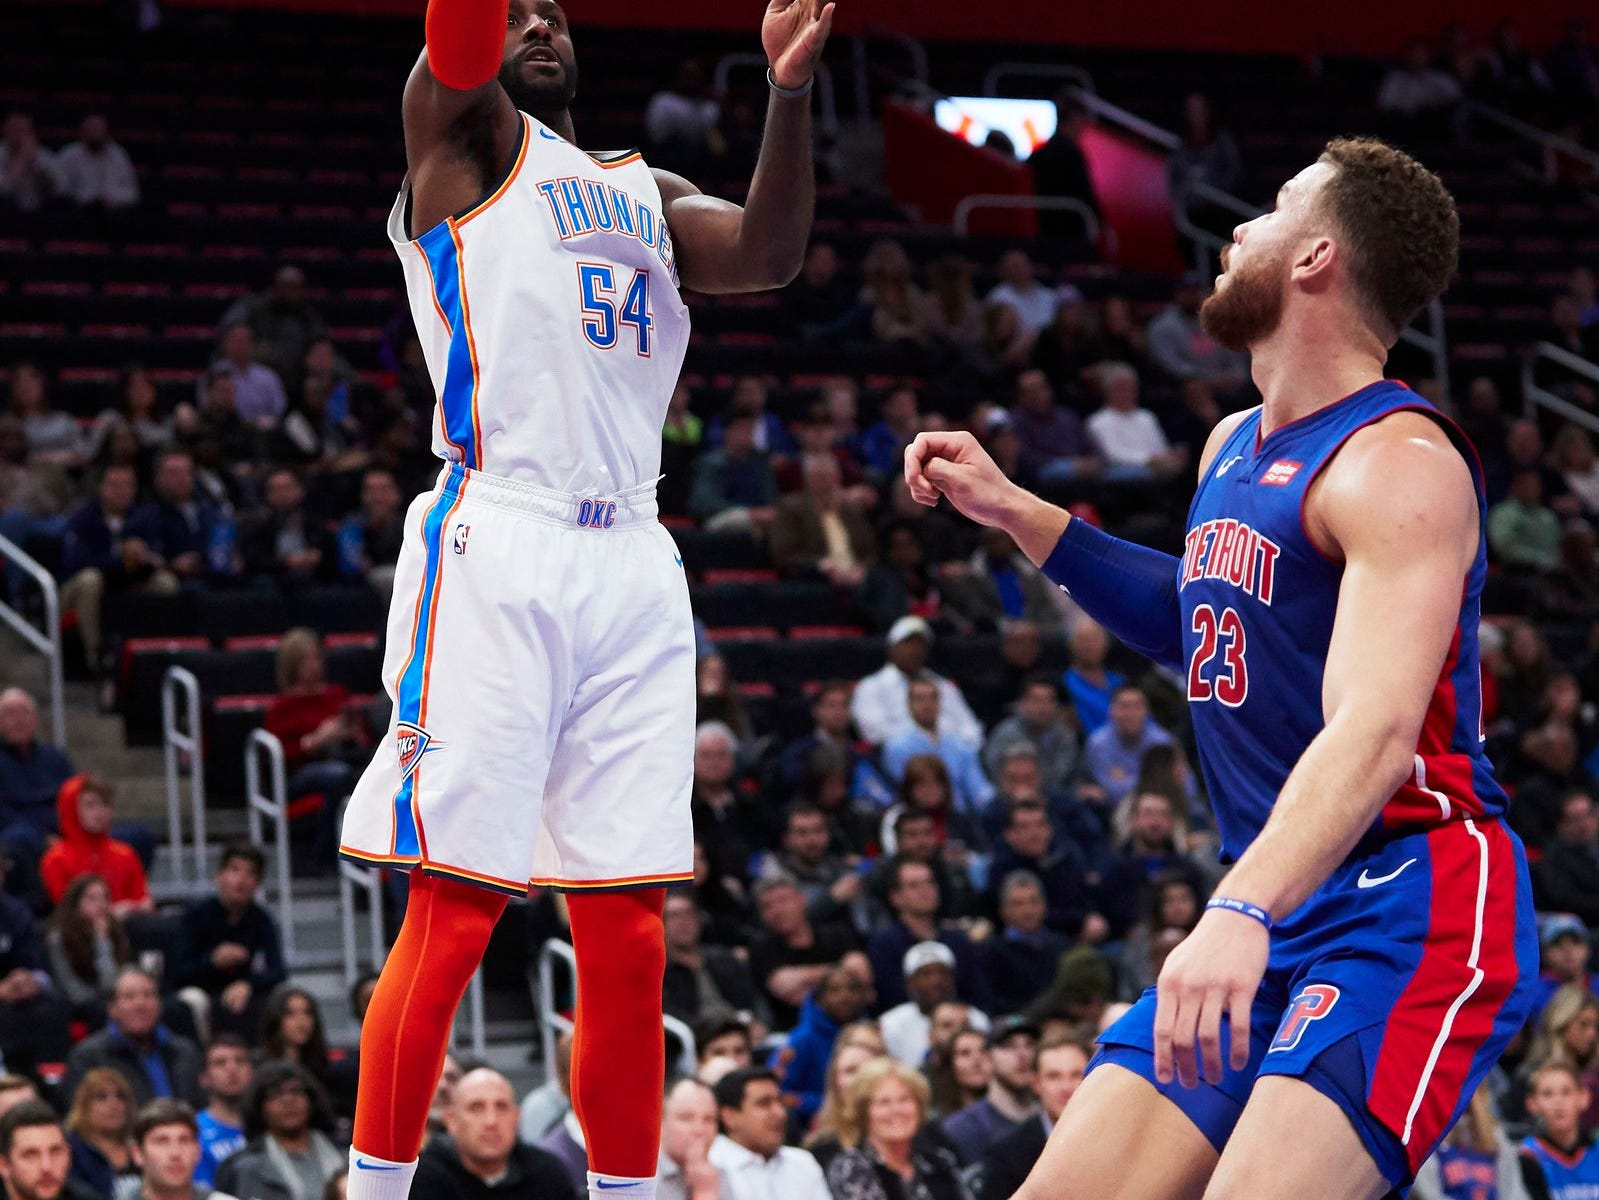 Oklahoma City Thunder forward Patrick Patterson (54) shoots over Detroit Pistons forward Blake Griffin (23) in the first half  at Little Caesars Arena.